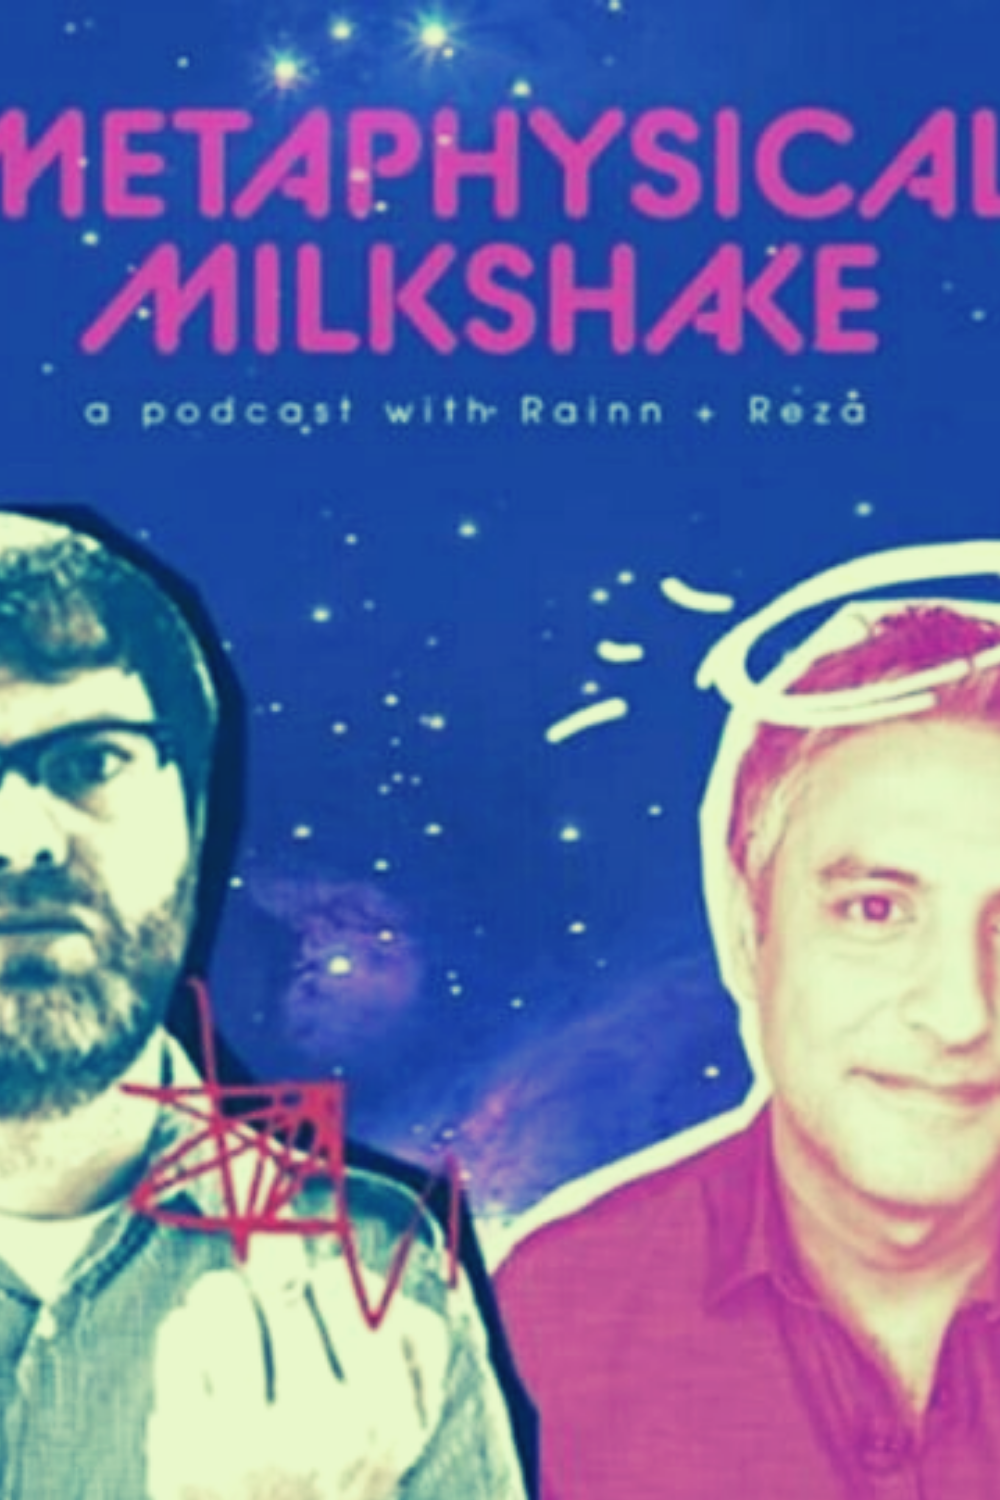 Metaphysical Milkshake podcast